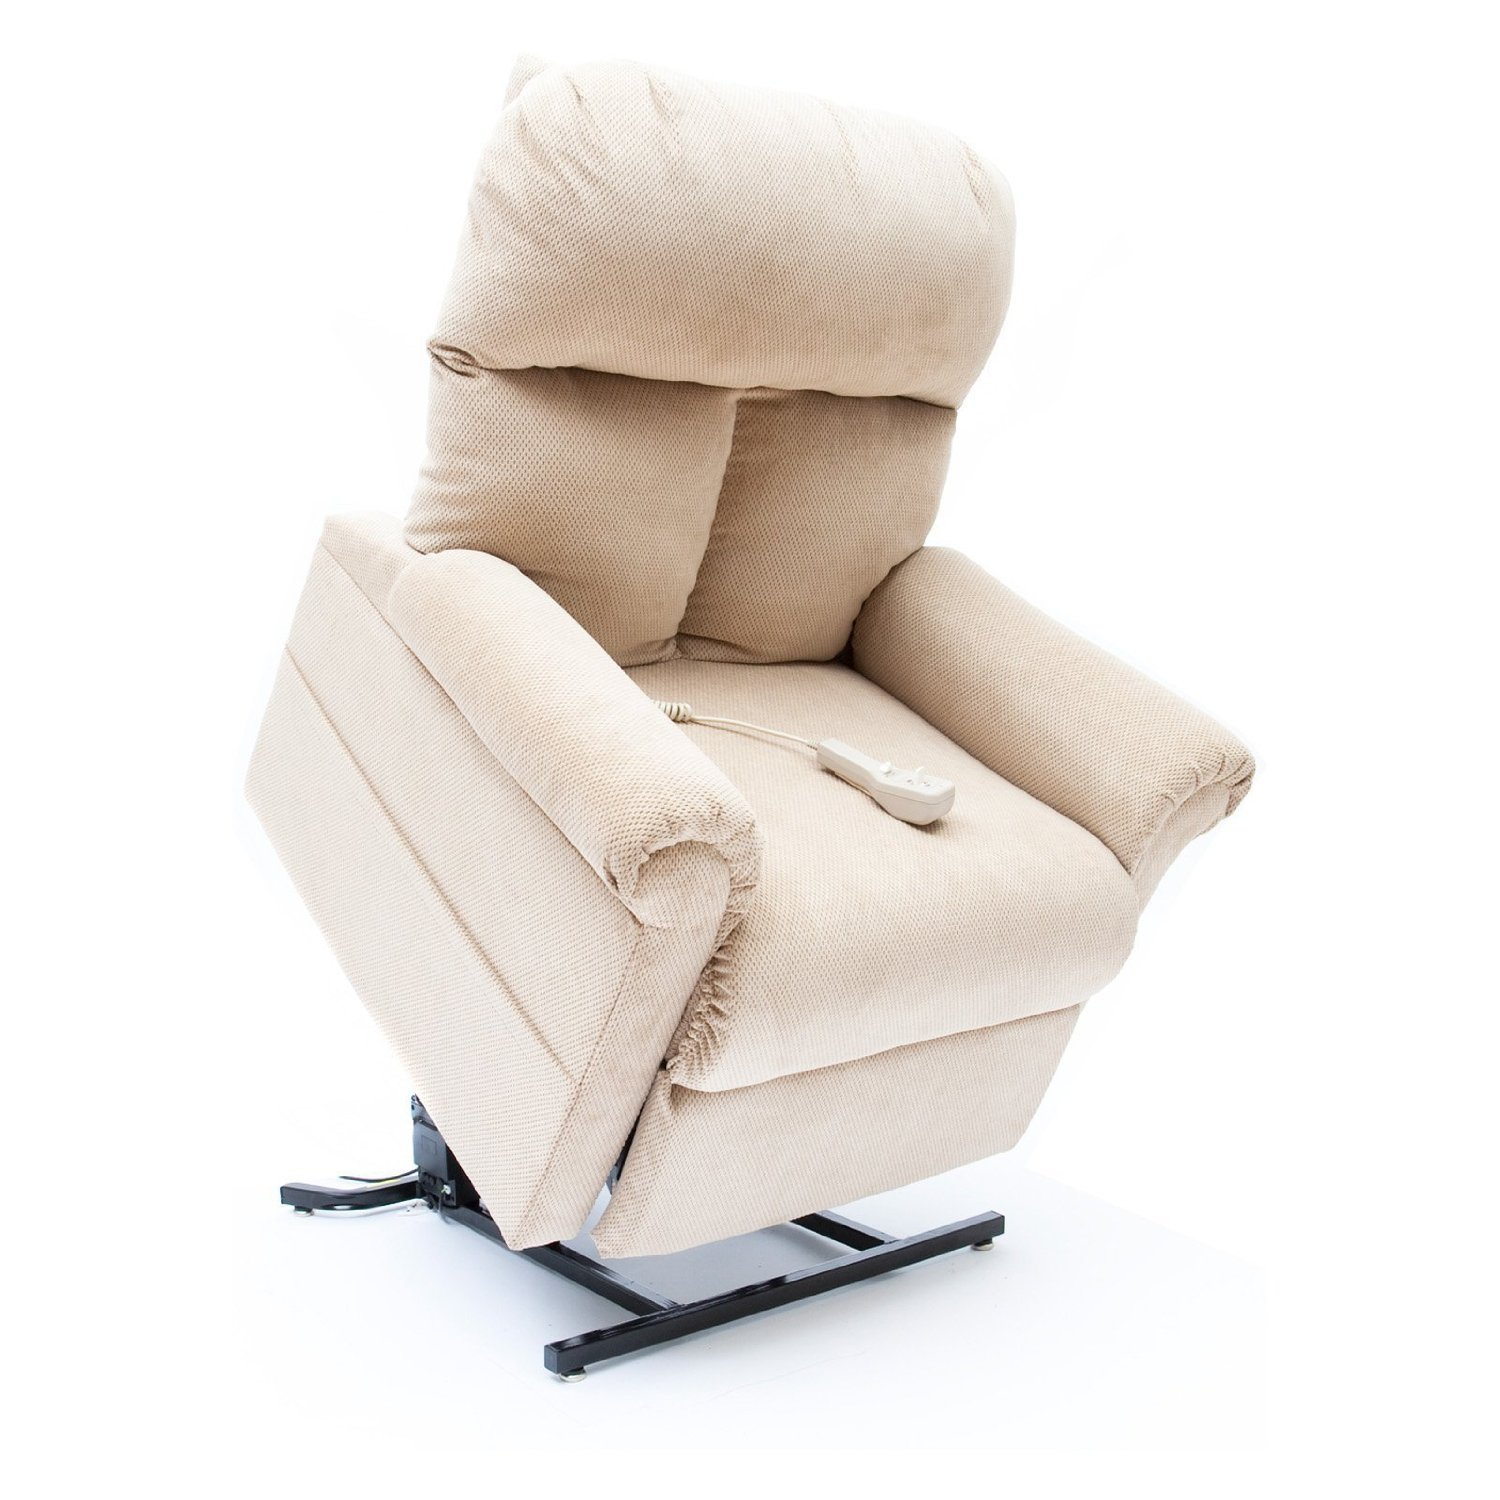 Fawn Tan Easy Comfort Lc 100 Power Electric Lift Chair